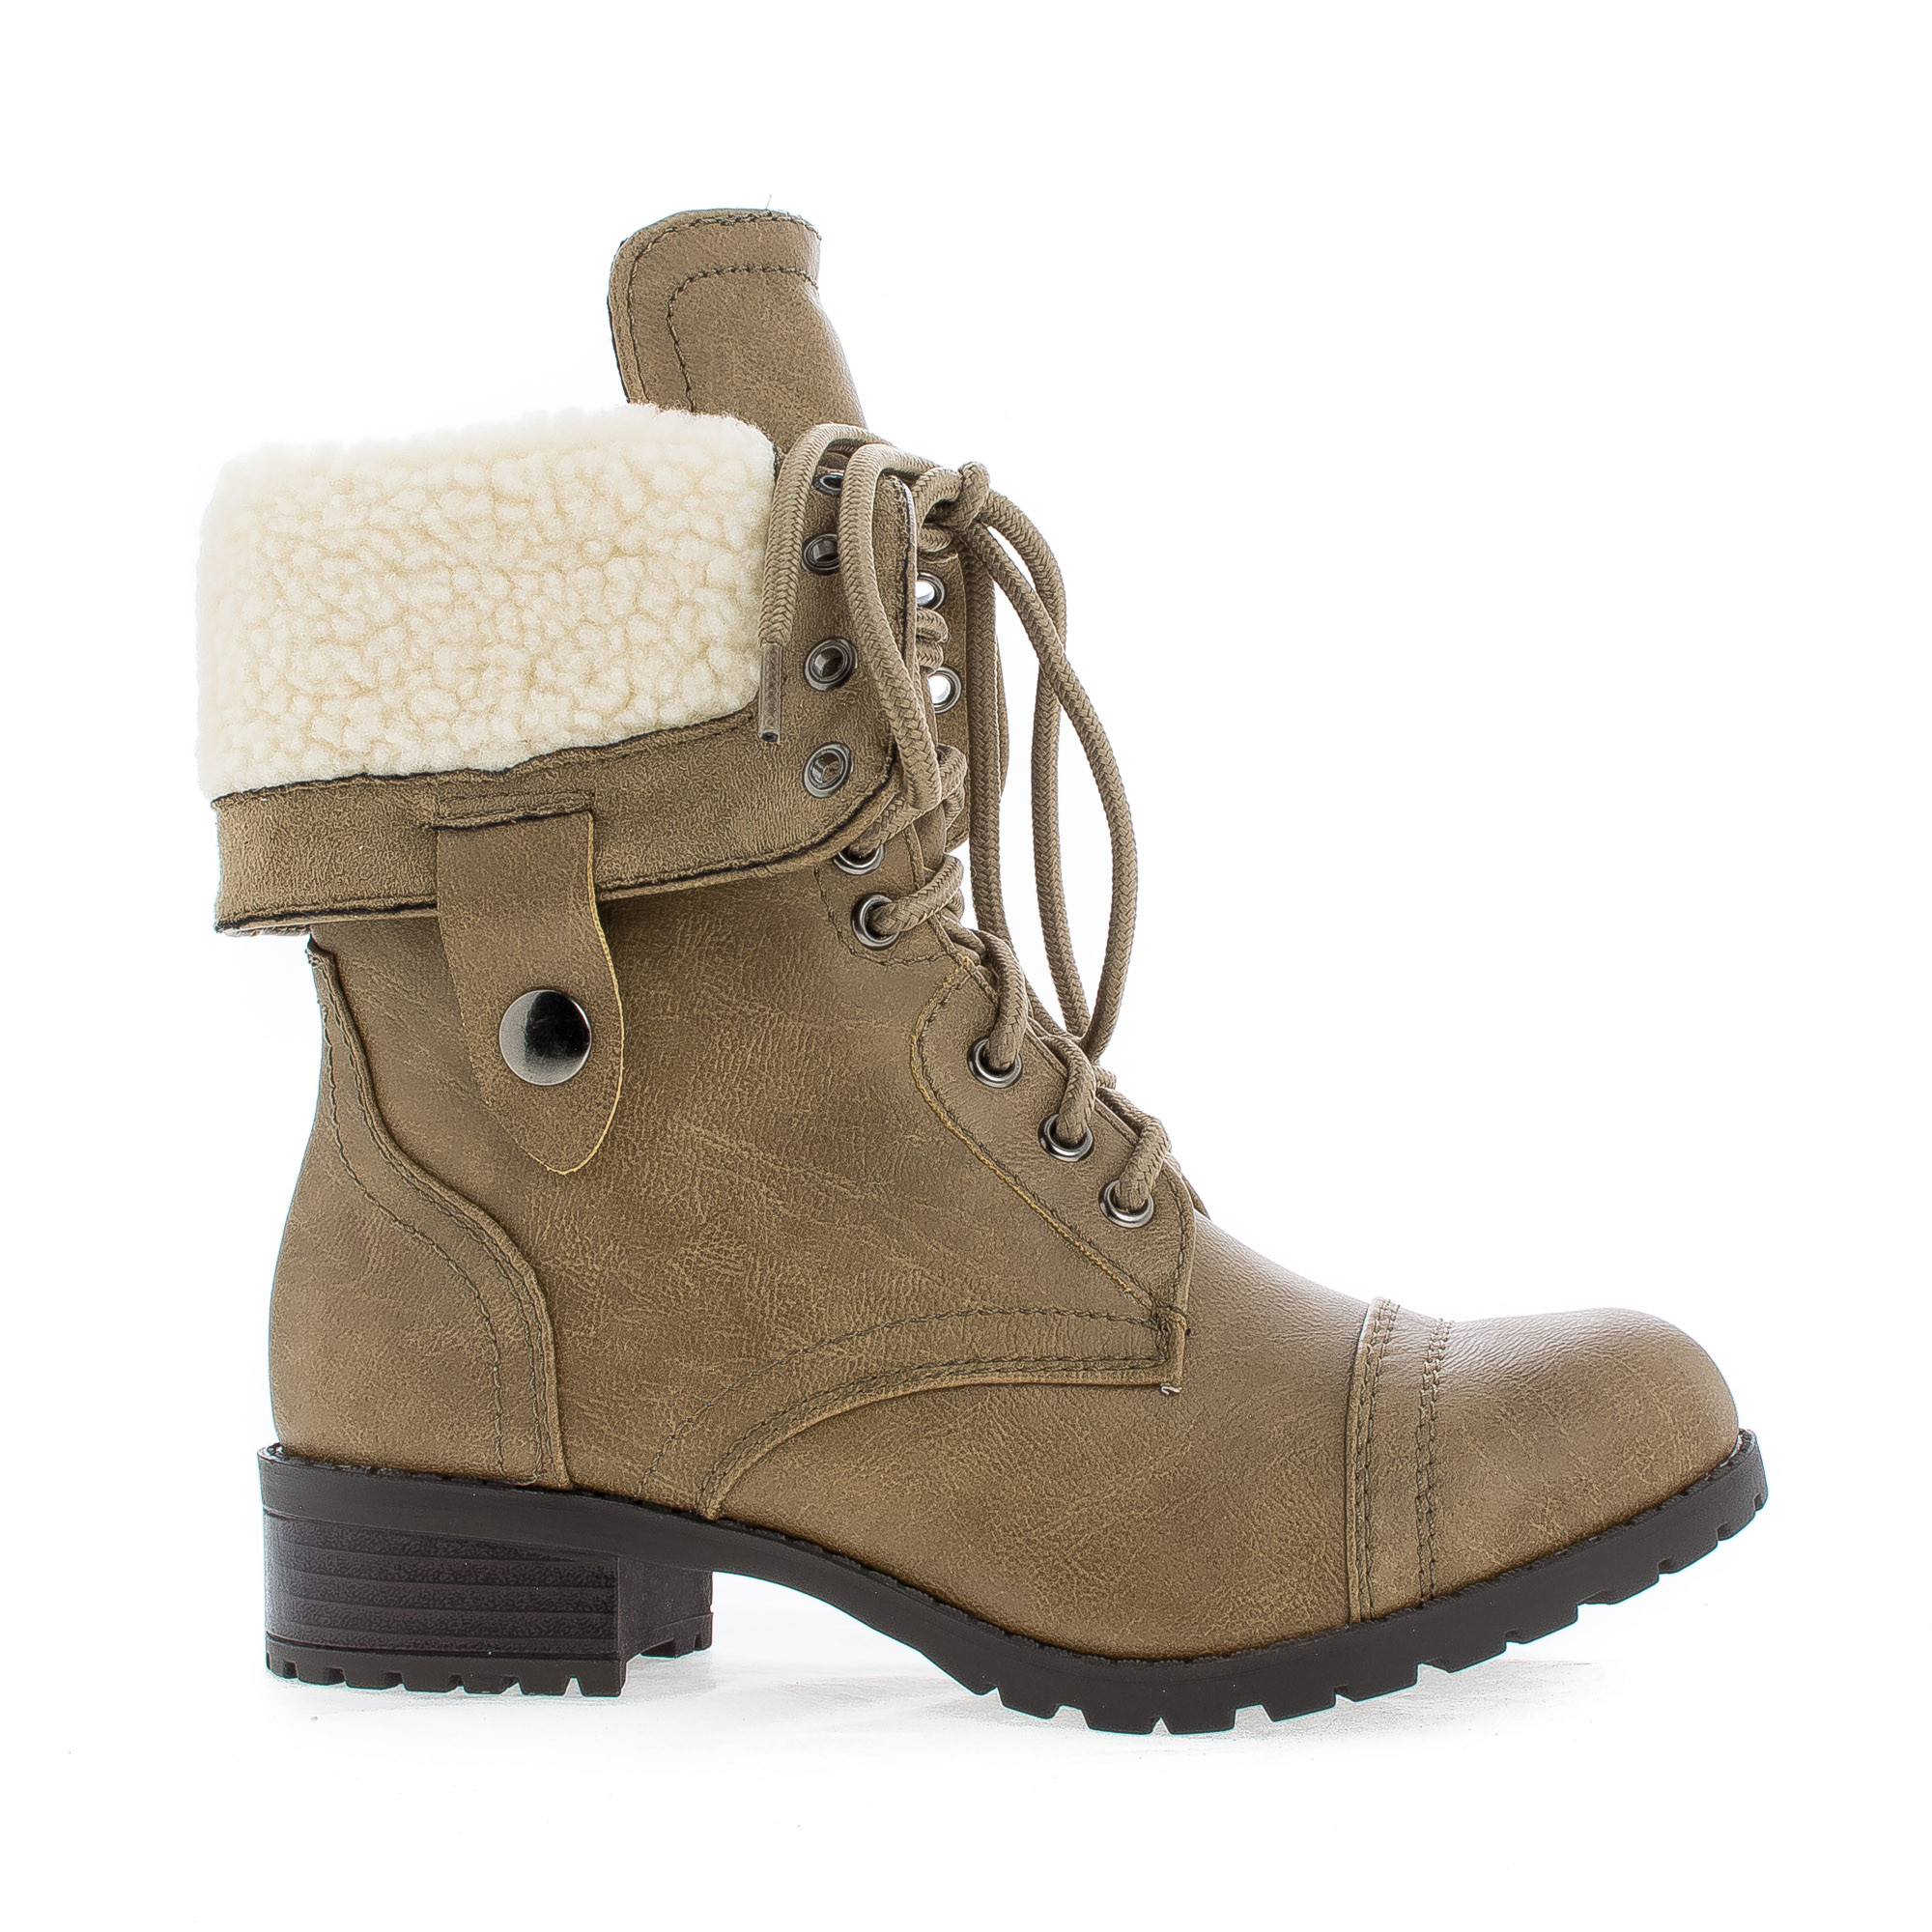 Oral by Soda, Round Toe Foldable Shaft Faux Shearling Mil...